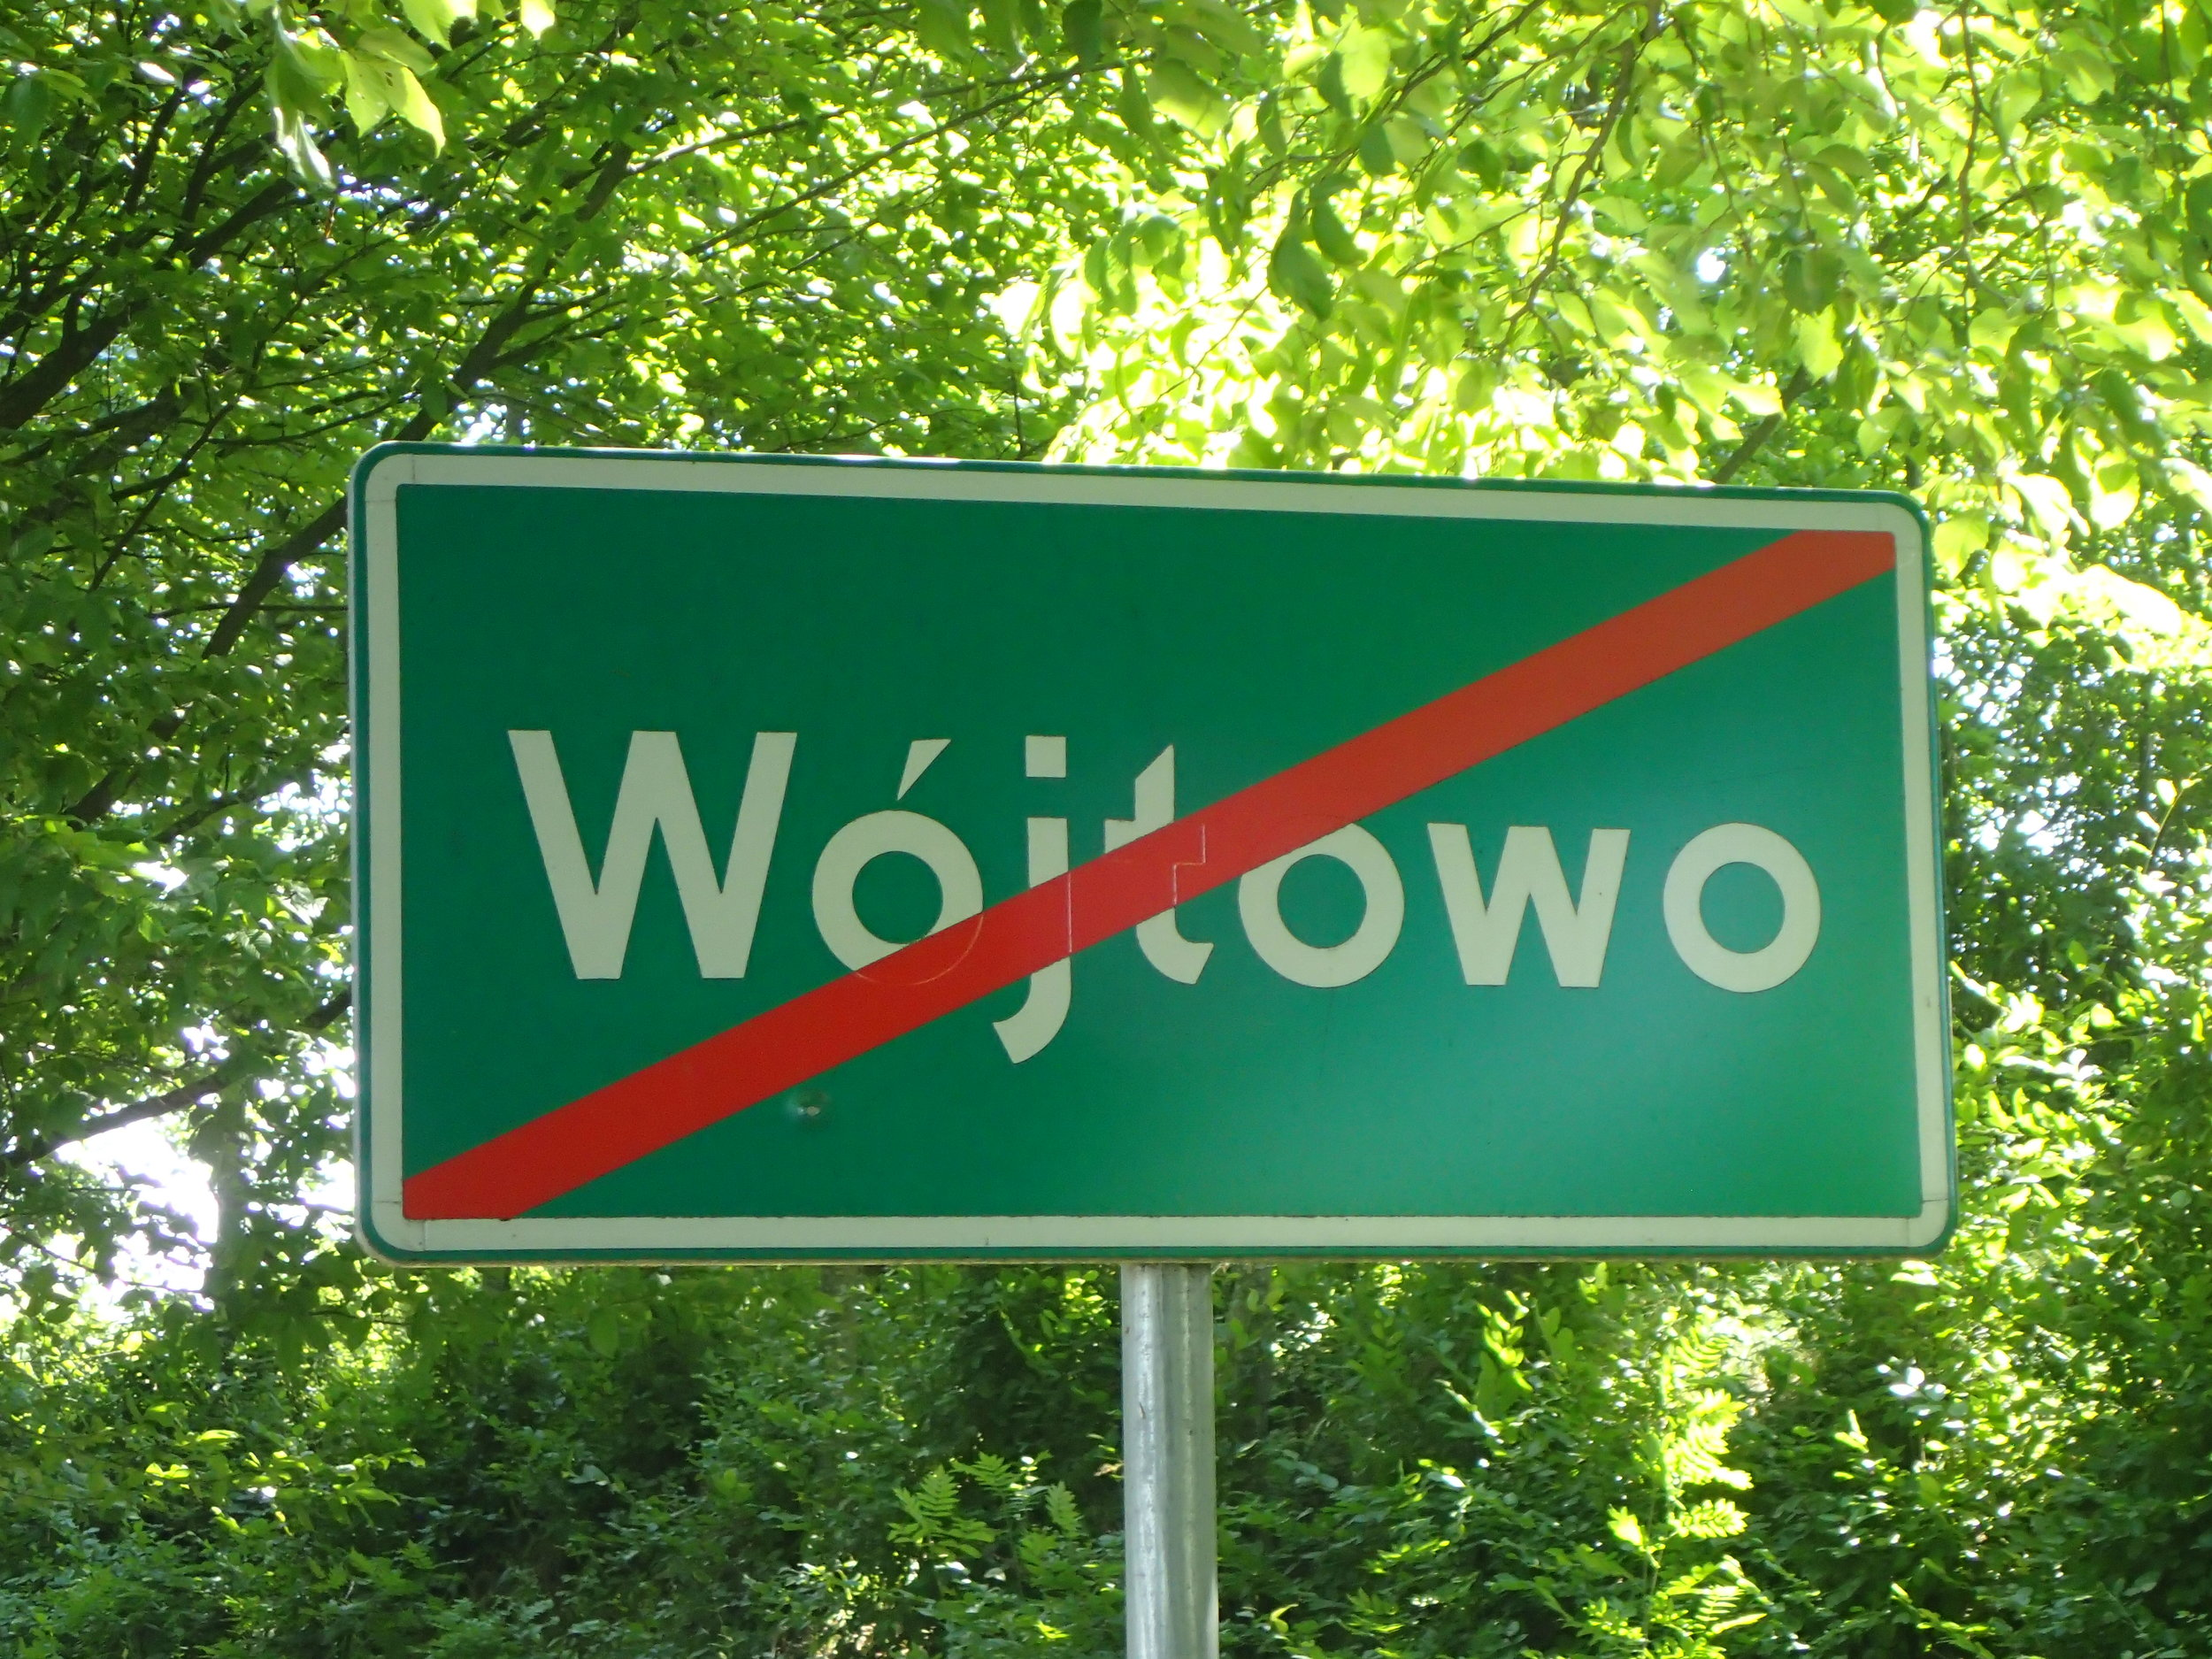 The exit of Wójtowo (formerly Voigtsdorf)